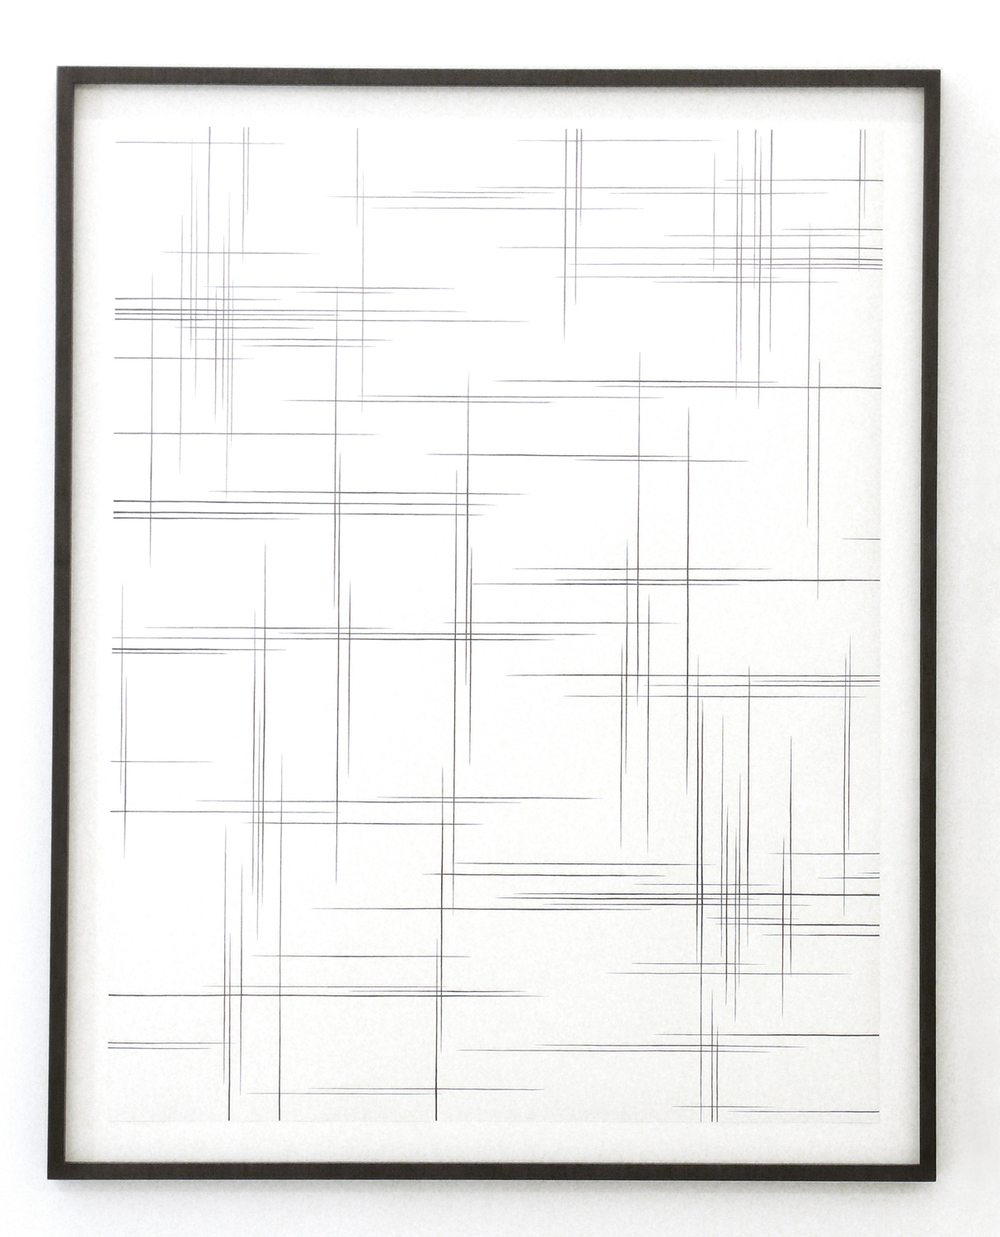 dust lll, 2011 pencil on paper, 110cm x 86cm